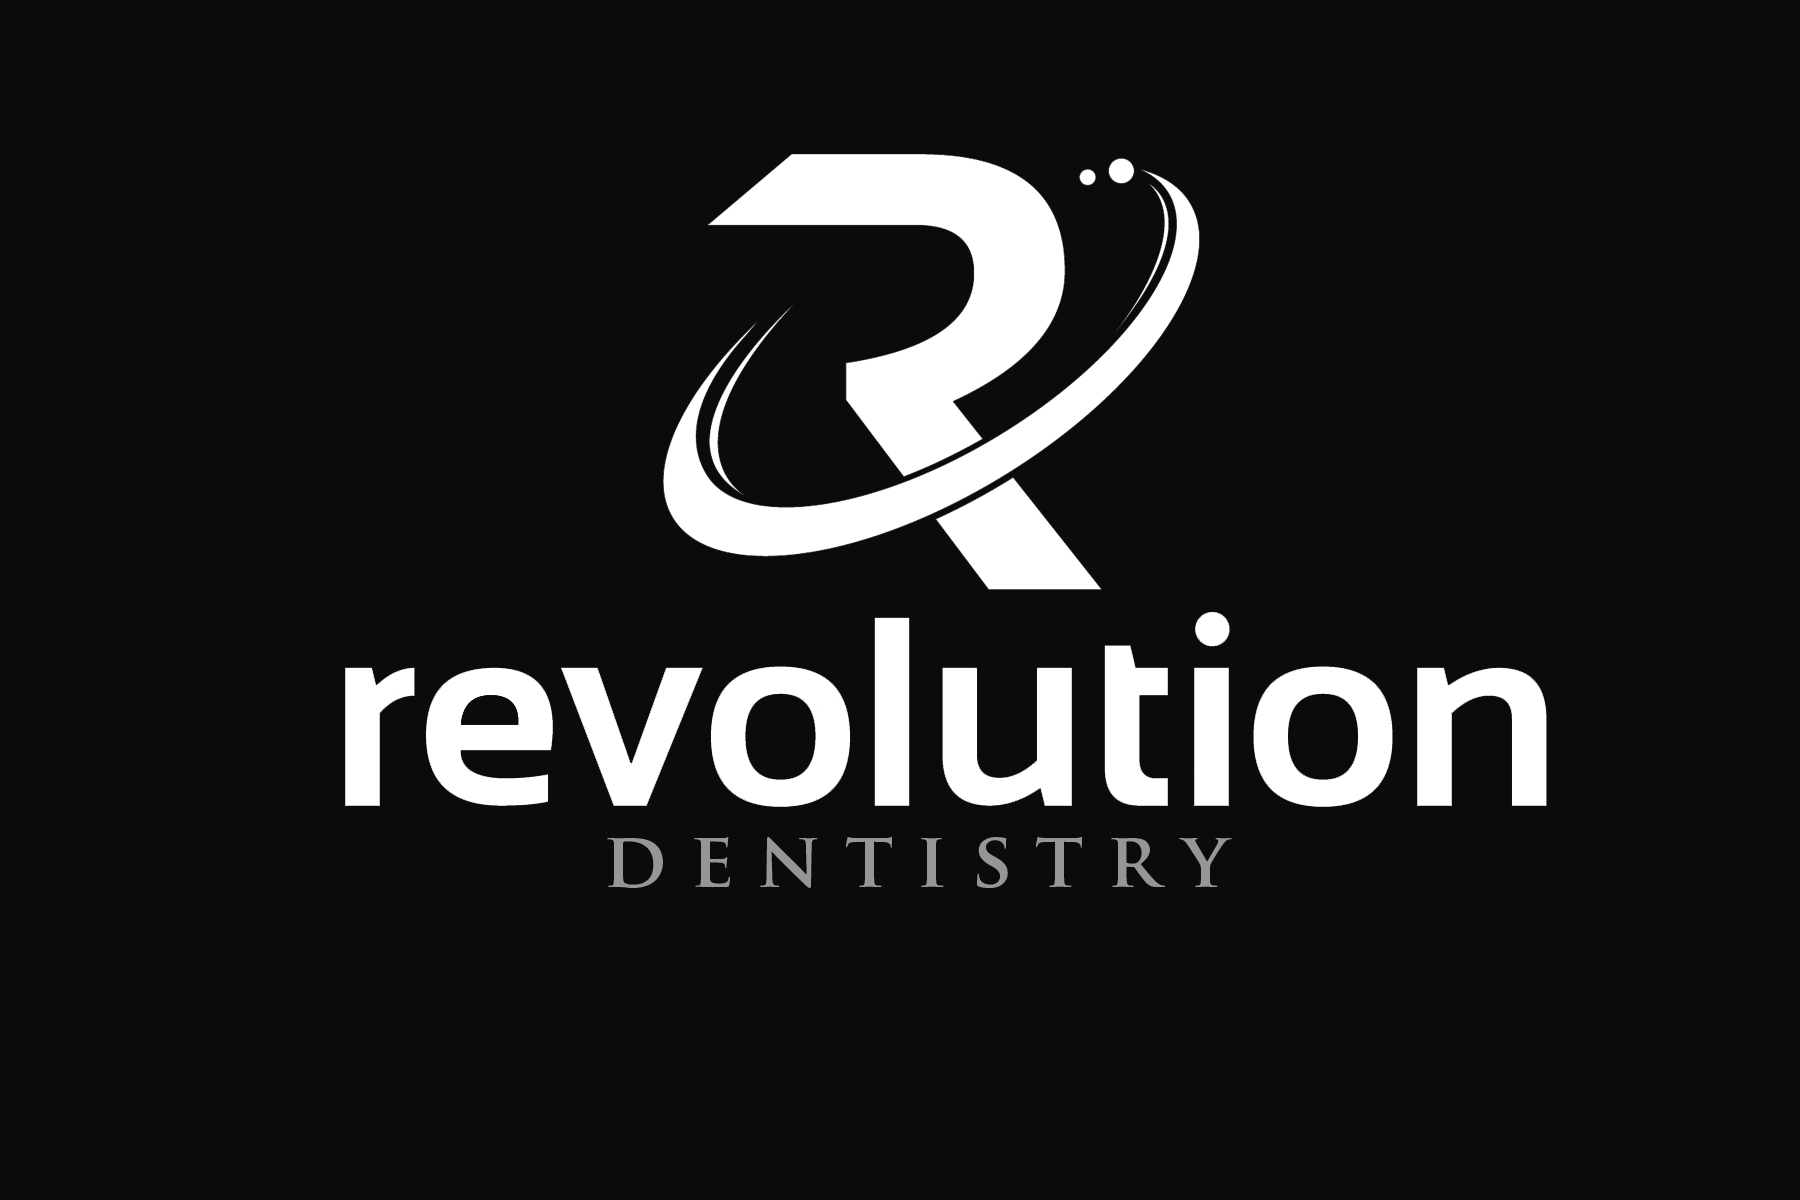 Logo Design by kashif97 - Entry No. 14 in the Logo Design Contest Artistic Logo Design for Revolution Dentistry.